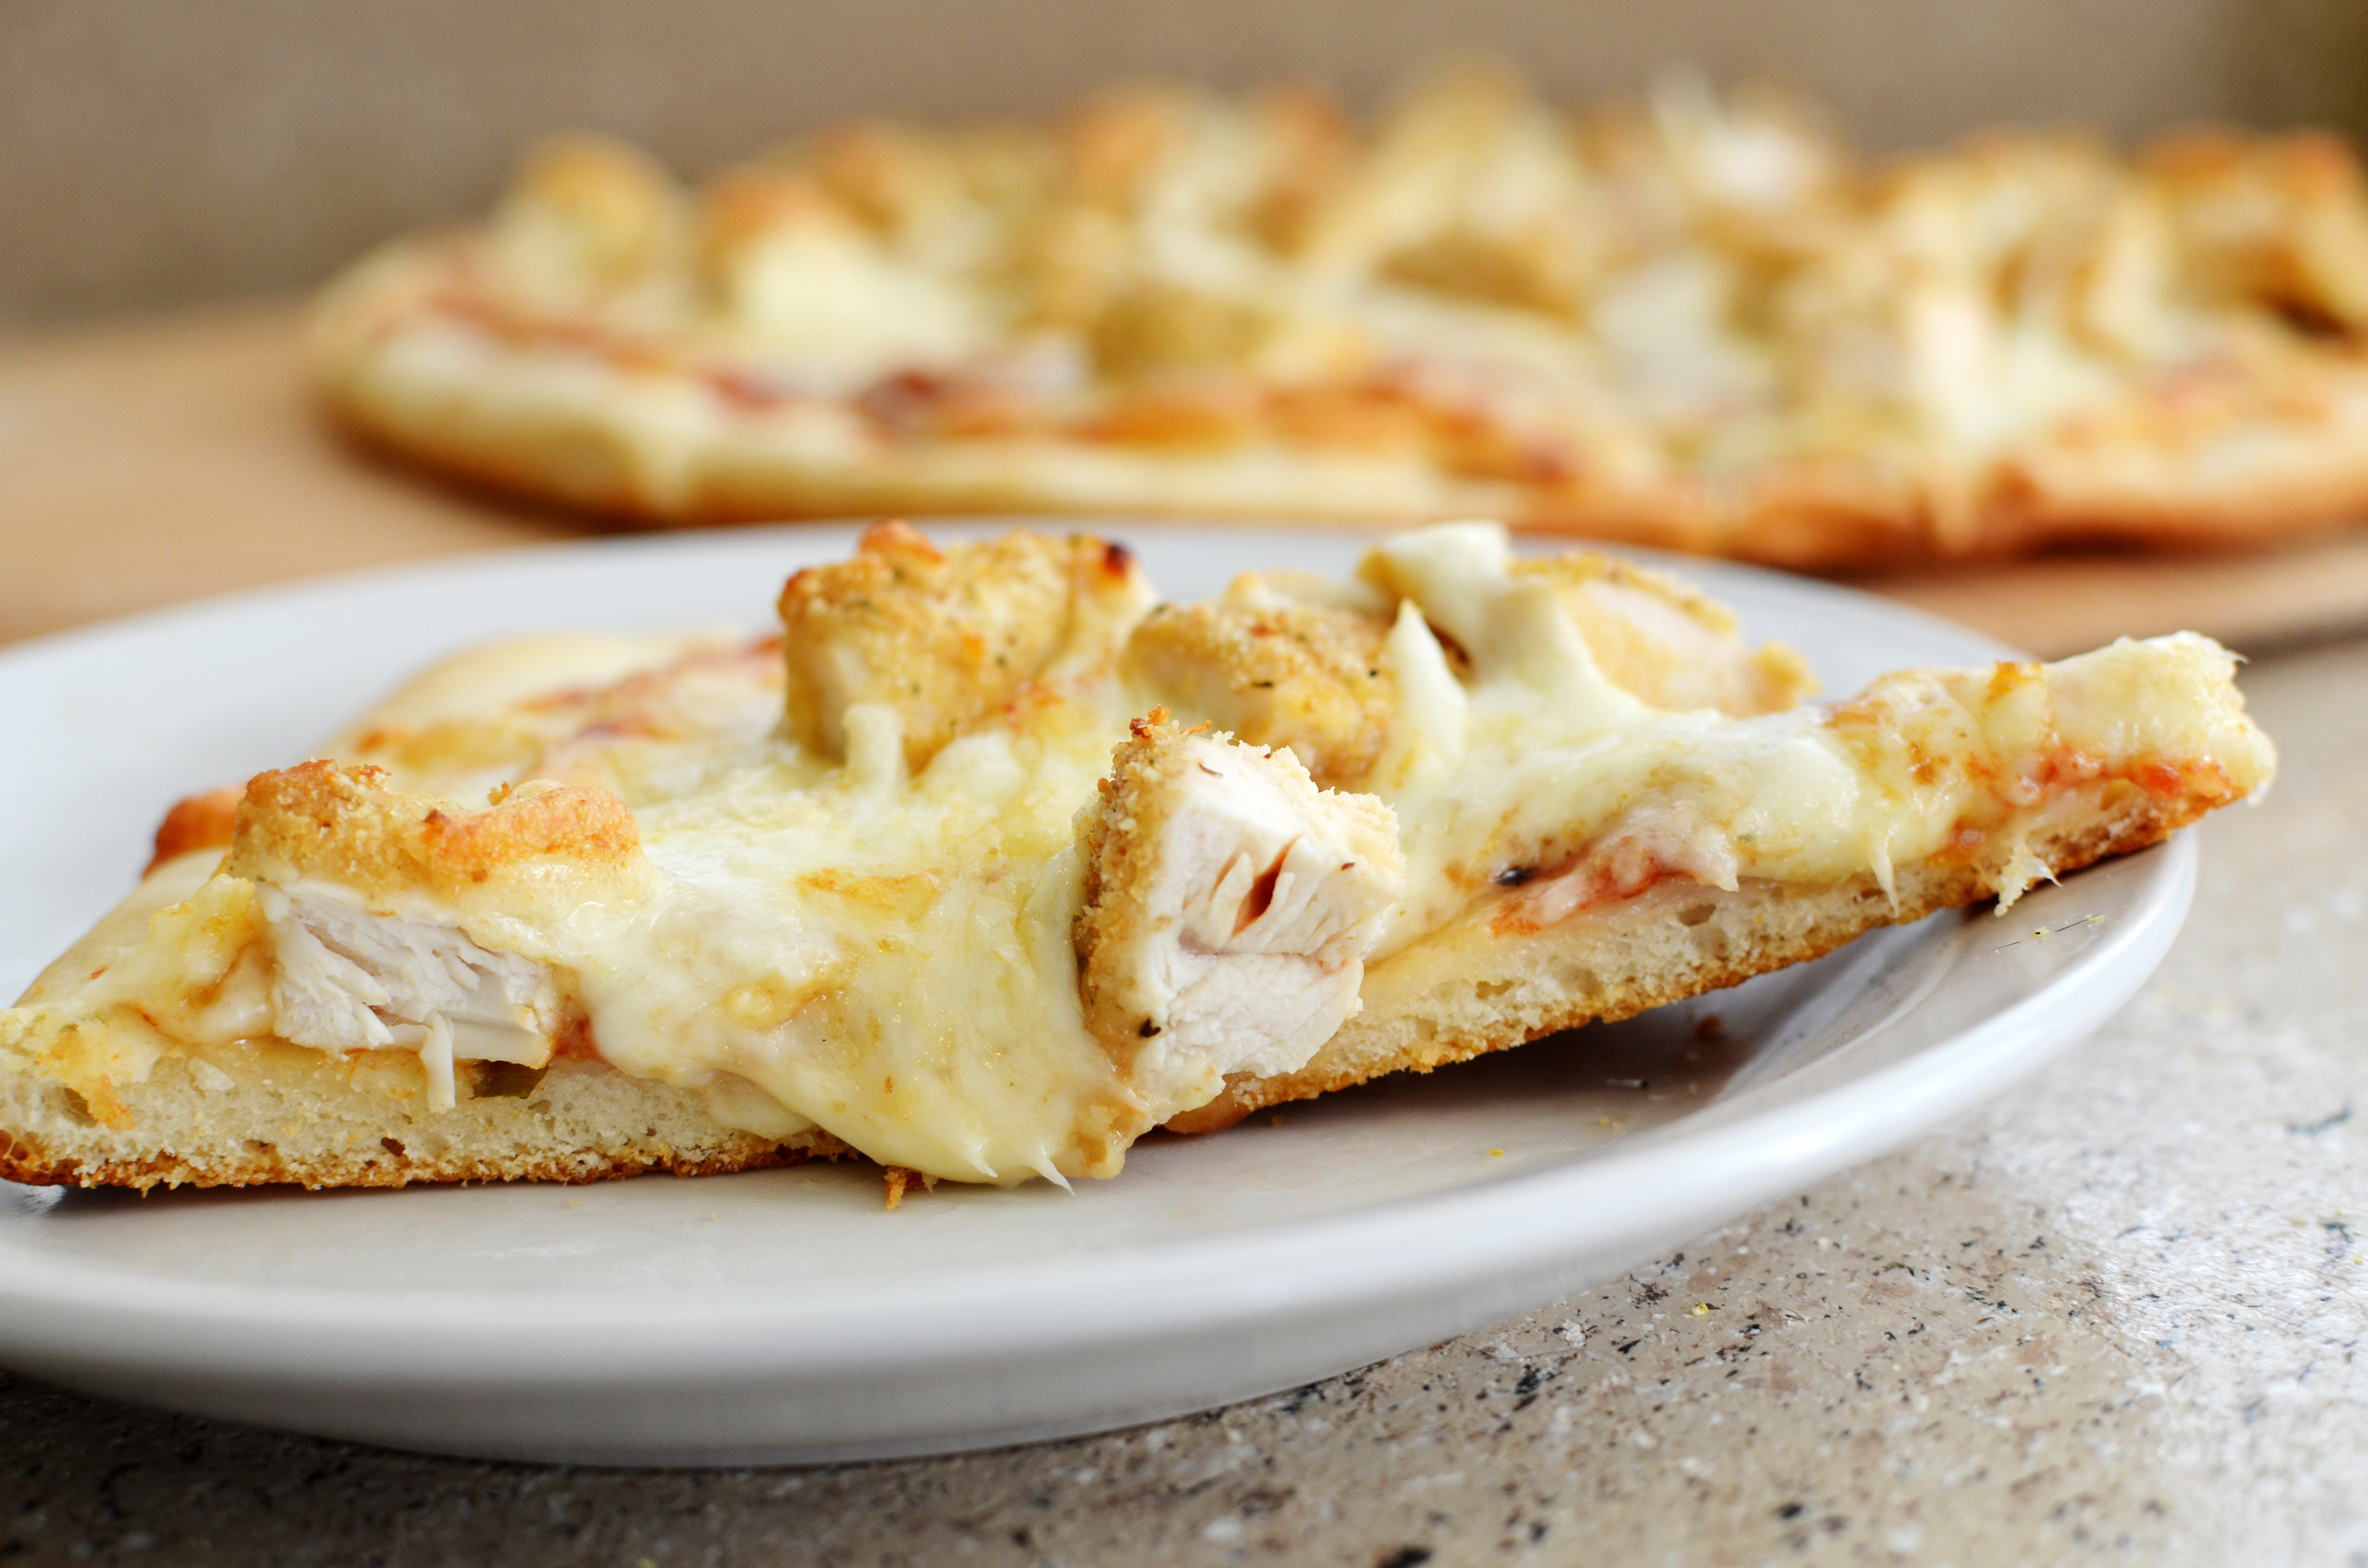 This recipe can be made easy with dough and sauce from the store, or ...